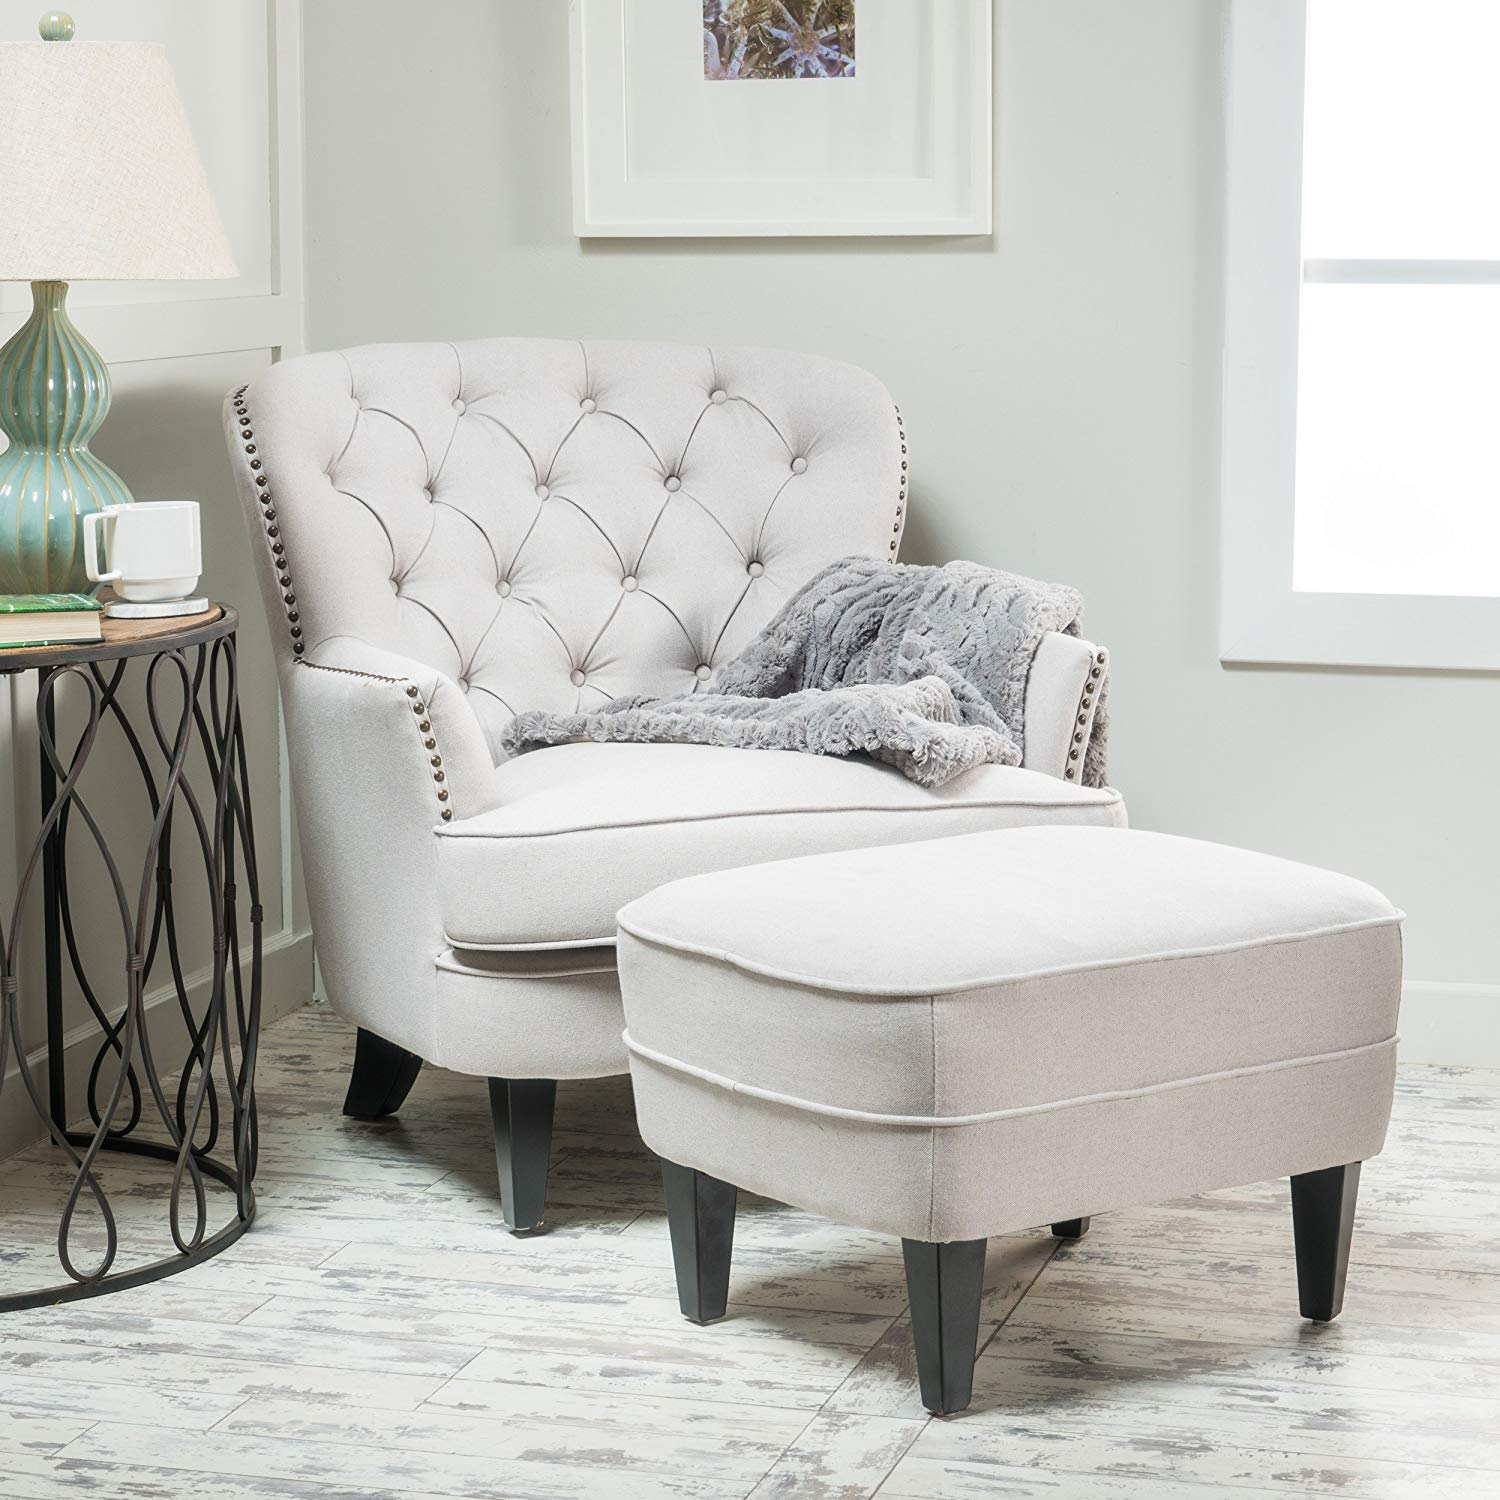 1568726763 529 oversized armchair designs reveal the best seat in the house - Oversized Armchair Designs Reveal The Best Seat In The House